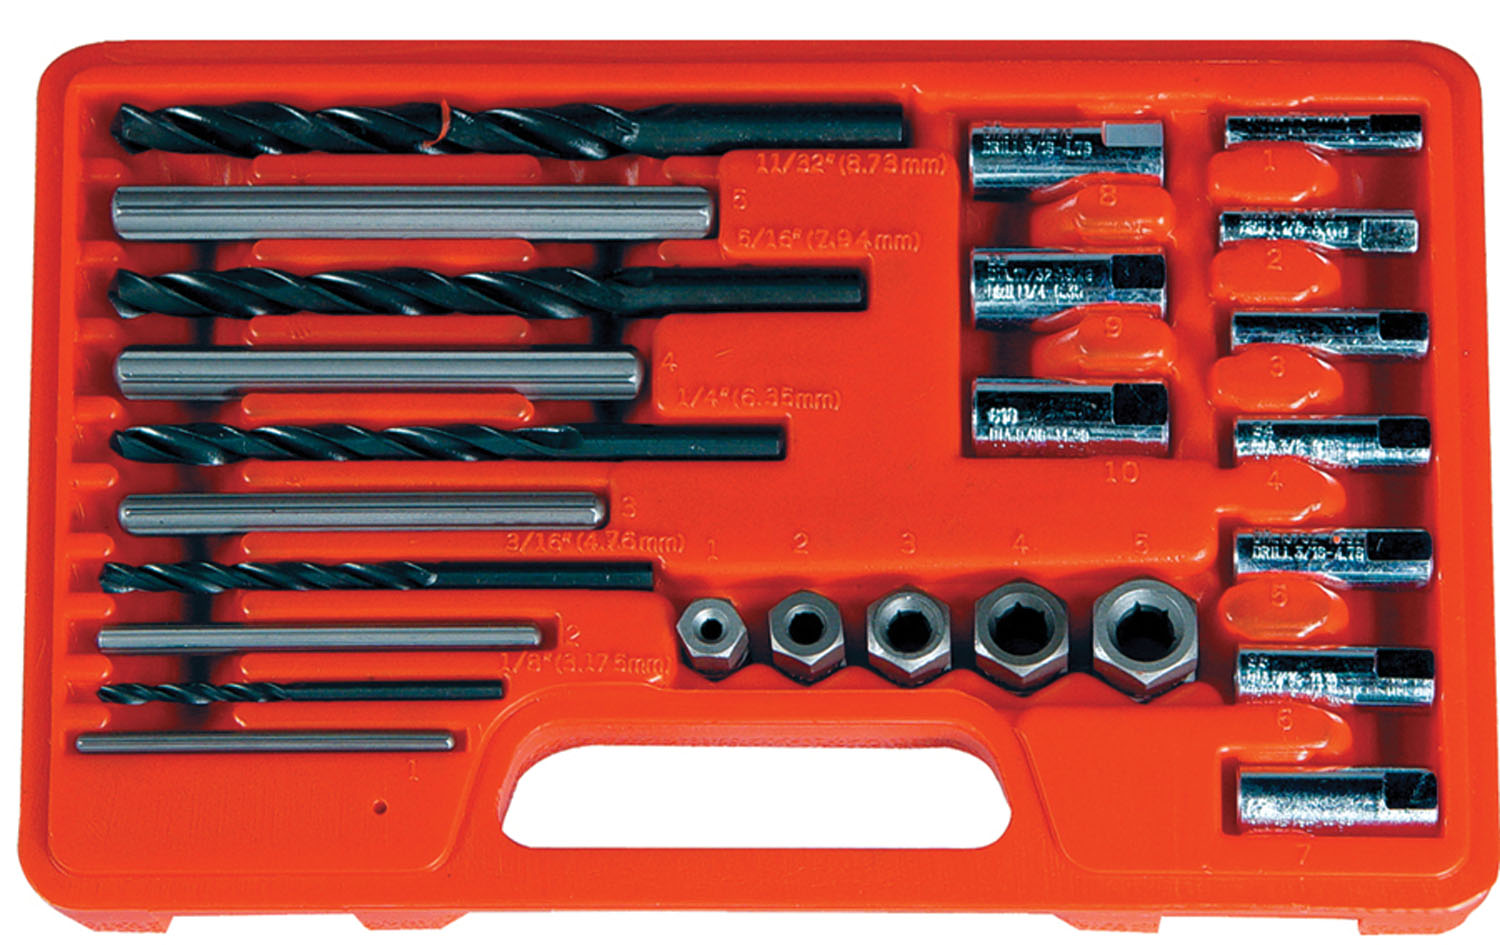 Astro Pneumatic 25 Pc. Screw Extractor/Drill & Guide Set at Sears.com